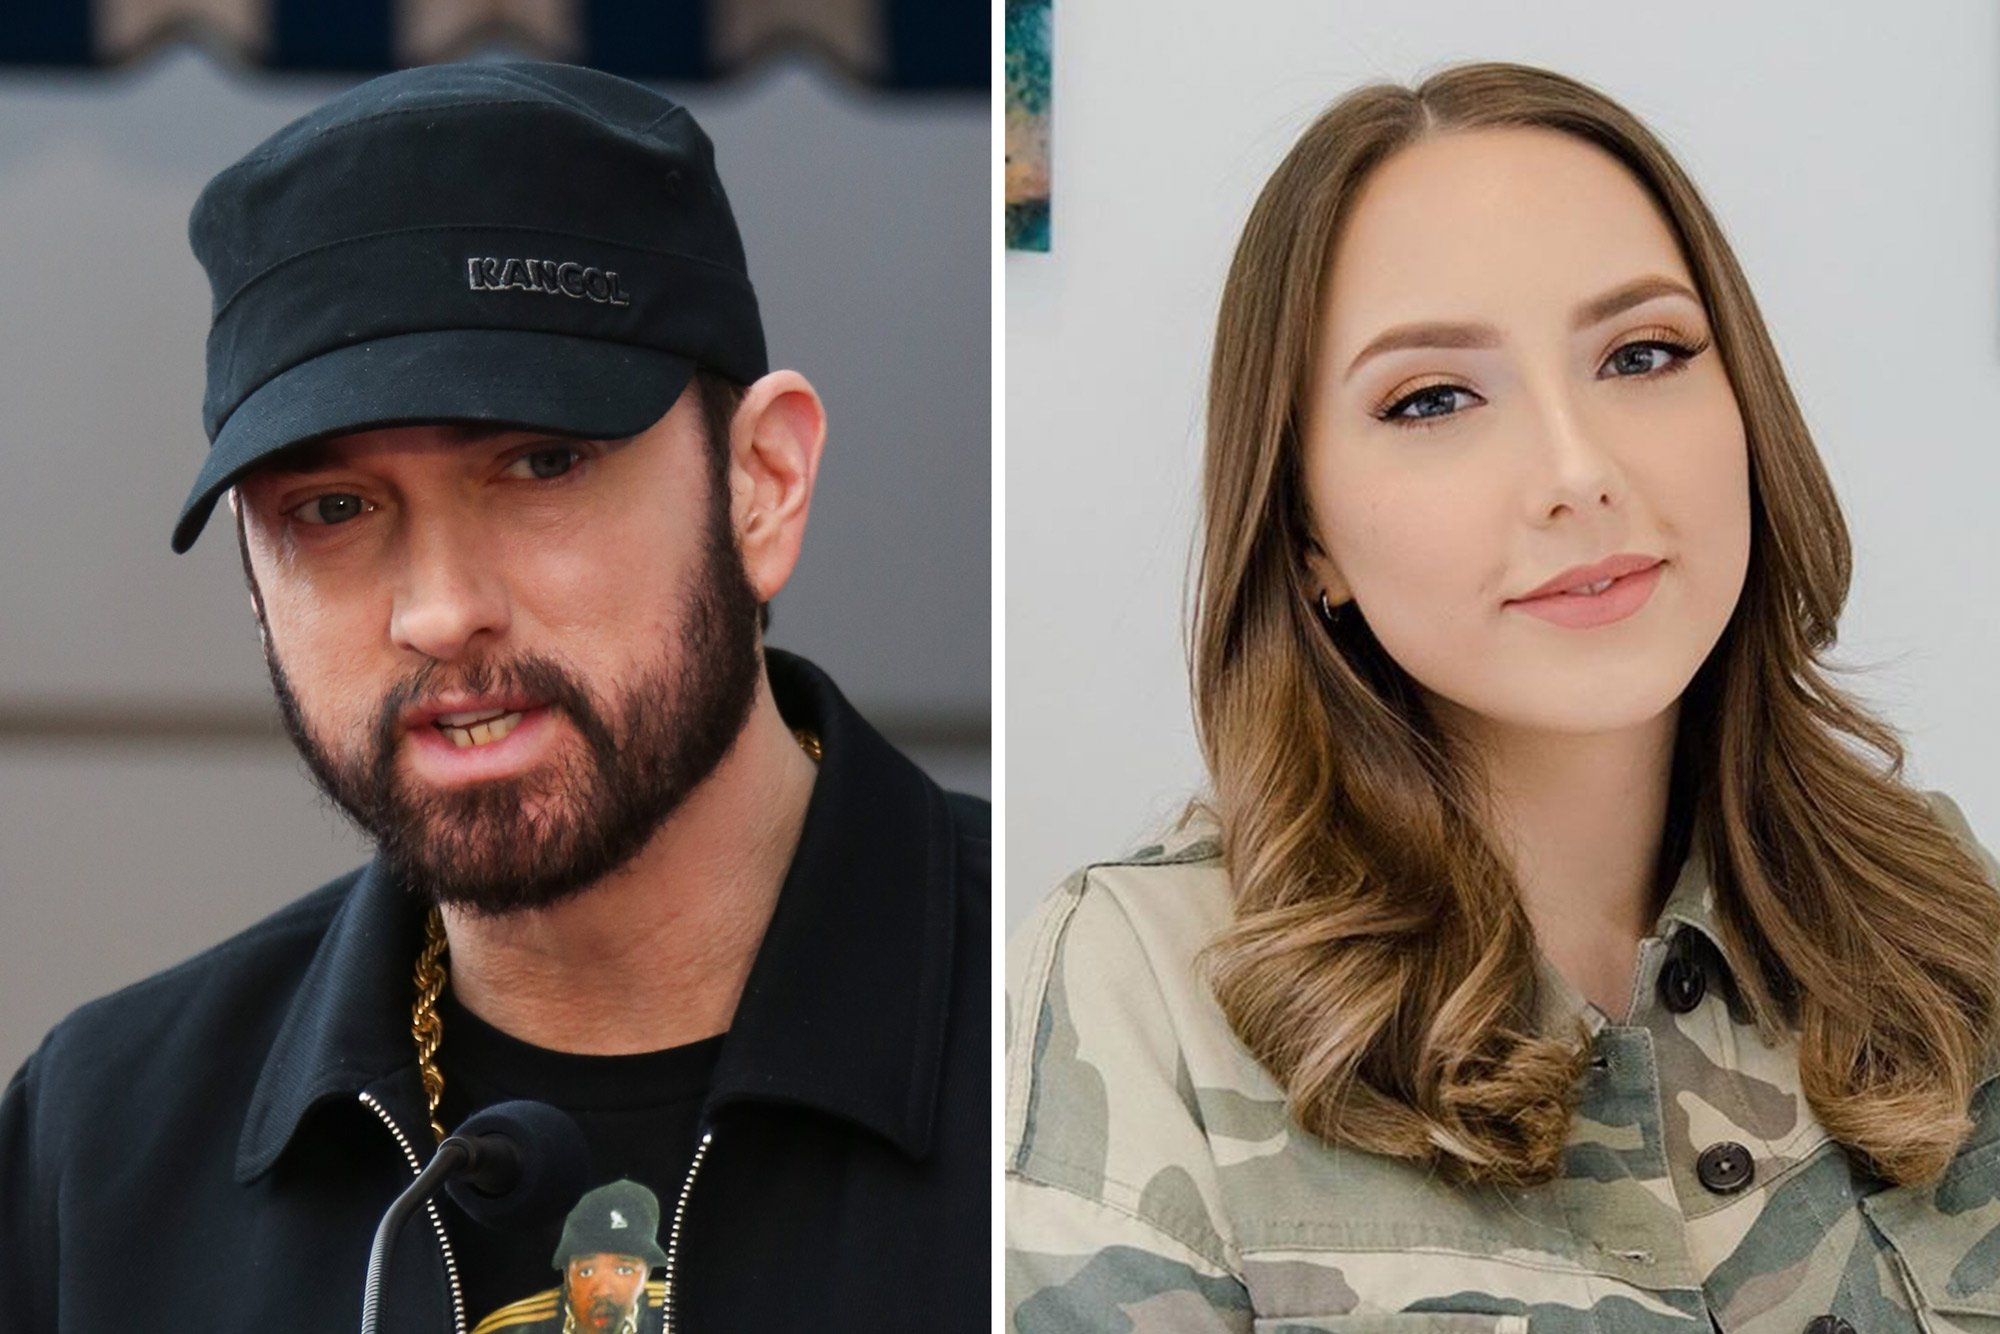 Eminem's Daughter Hailie Posts Valentine's Day Makeup Tutorial And She Looks Stunning – Check It Out!